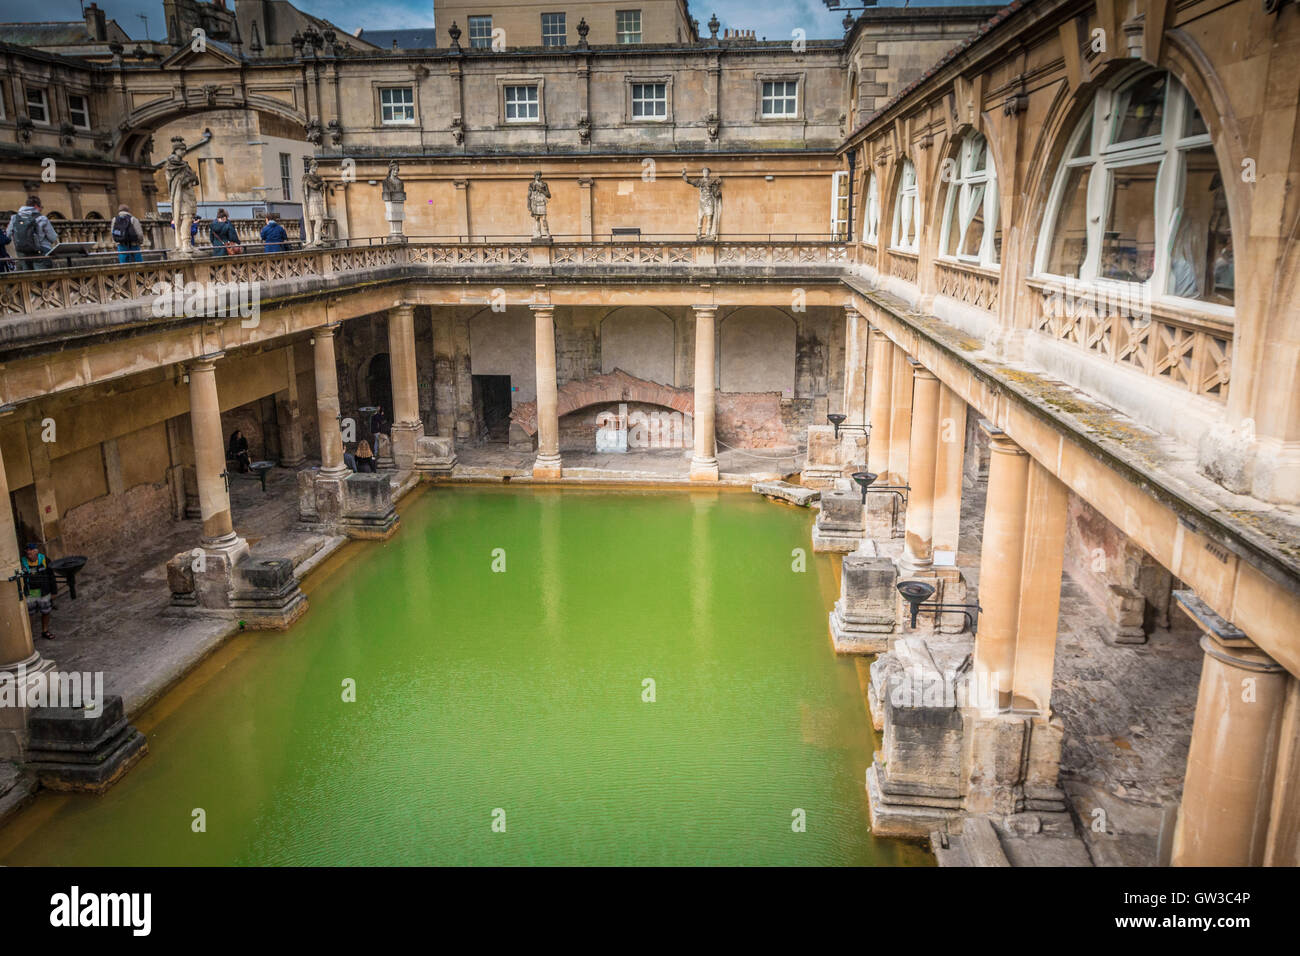 Thermal pool in Bath England - Stock Image